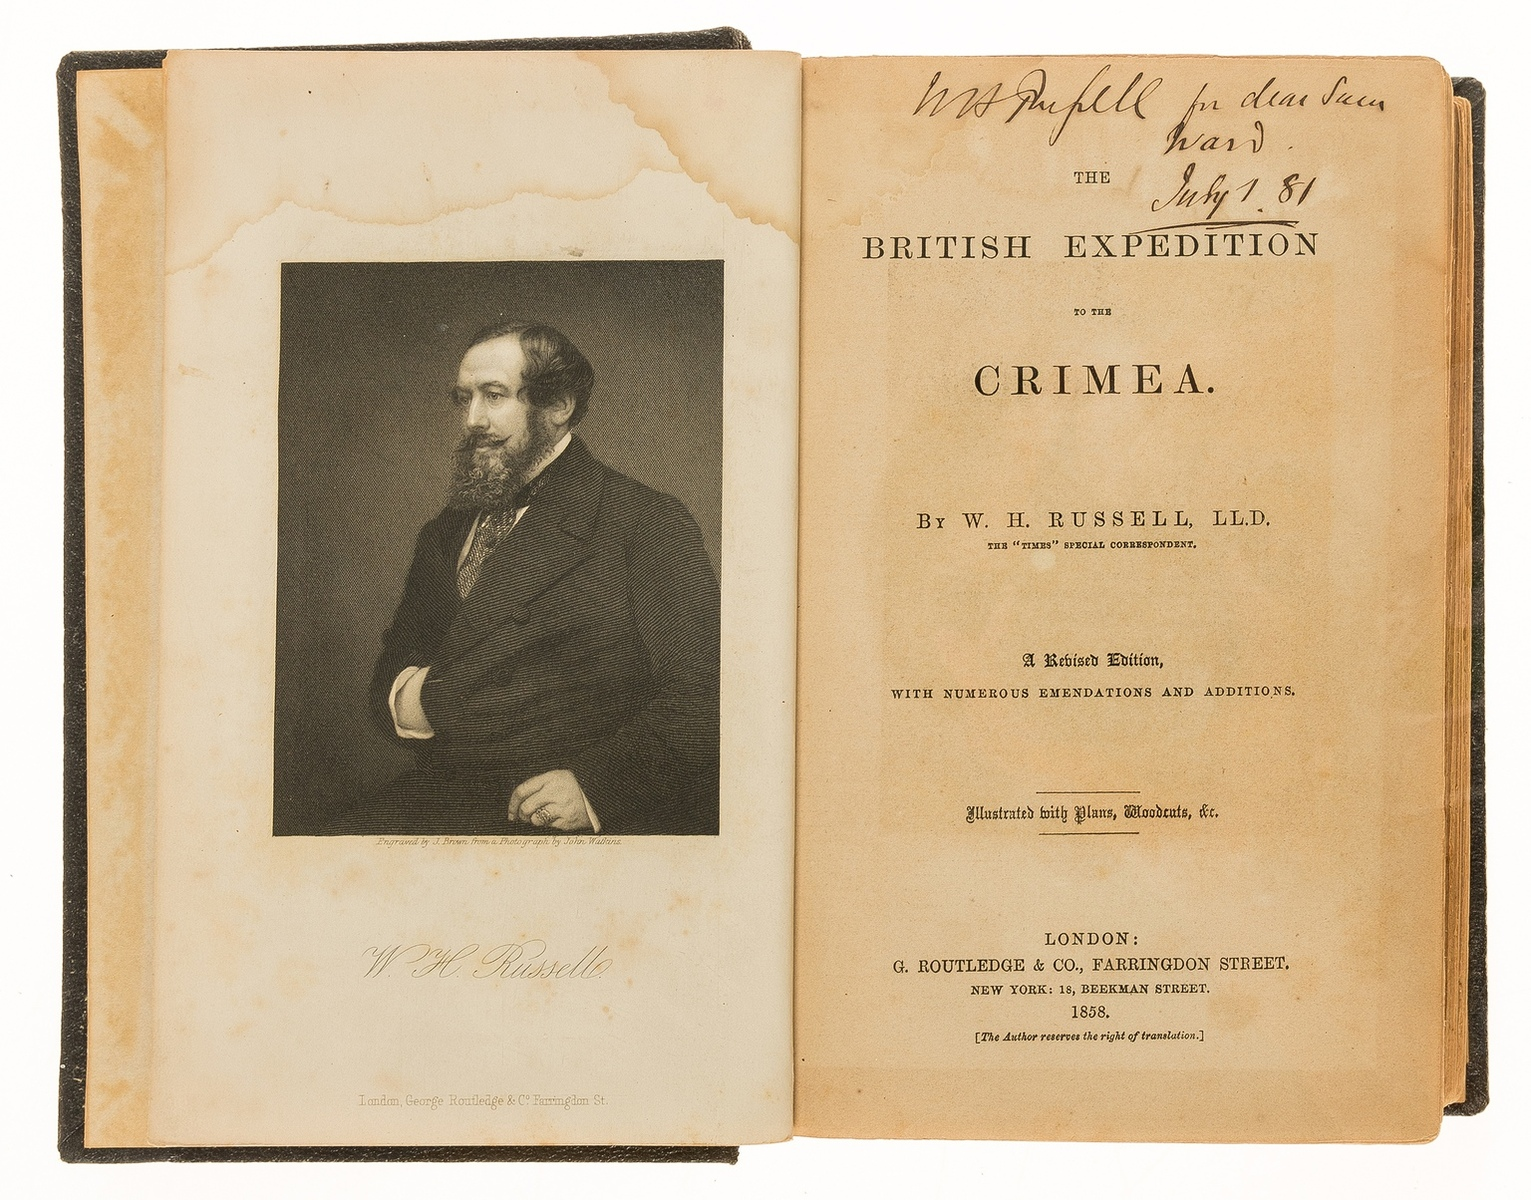 Crimea.- Russell (W.H.) The British Expedition to the Crimea, inscribed by author, 1858.